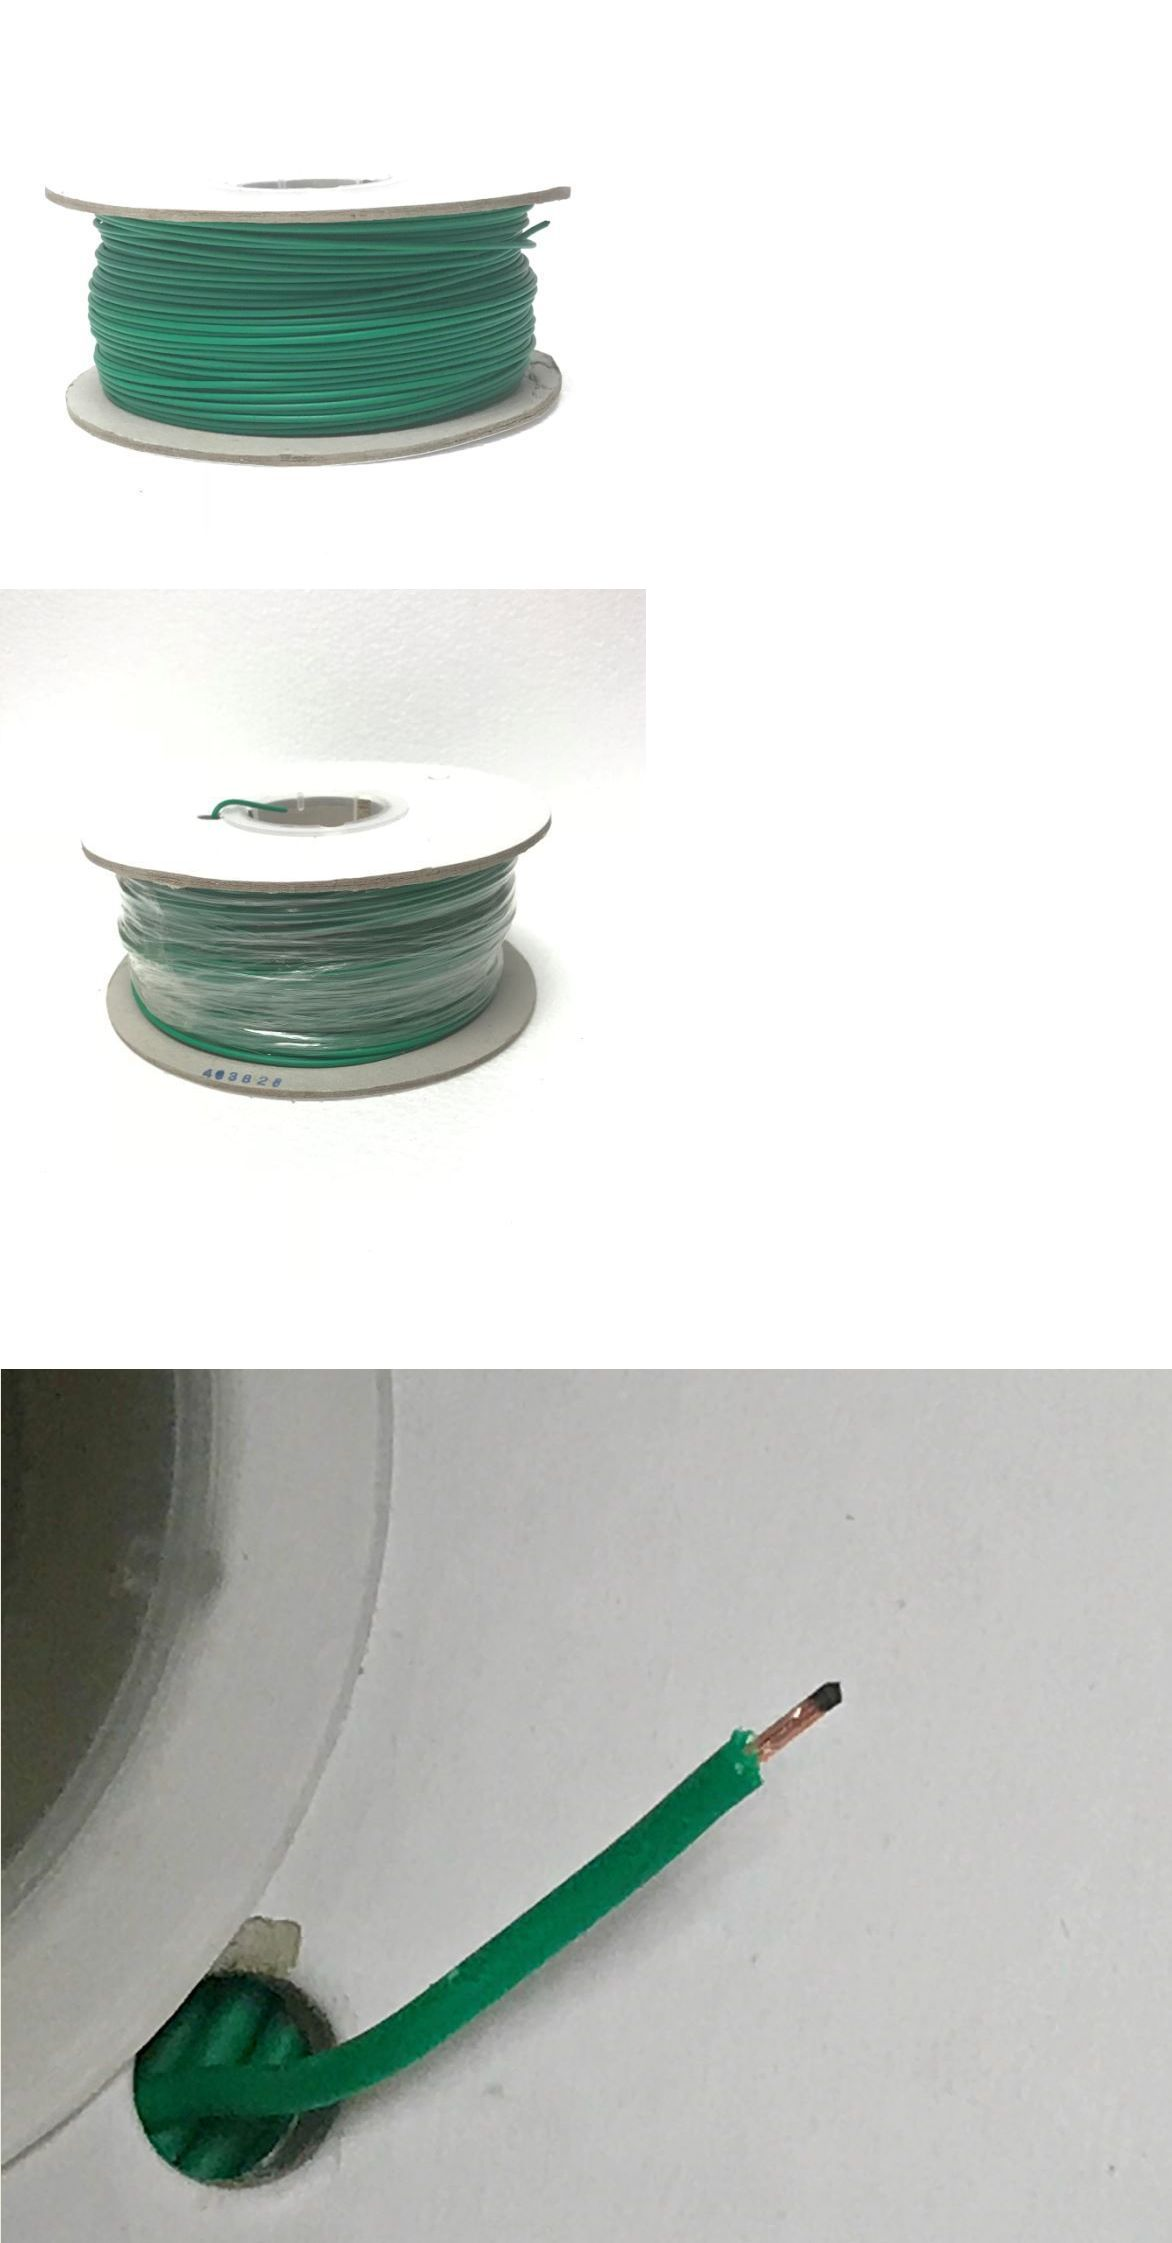 Details about PetSafe Boundary Wire 500 ft 20 Gauge Solid